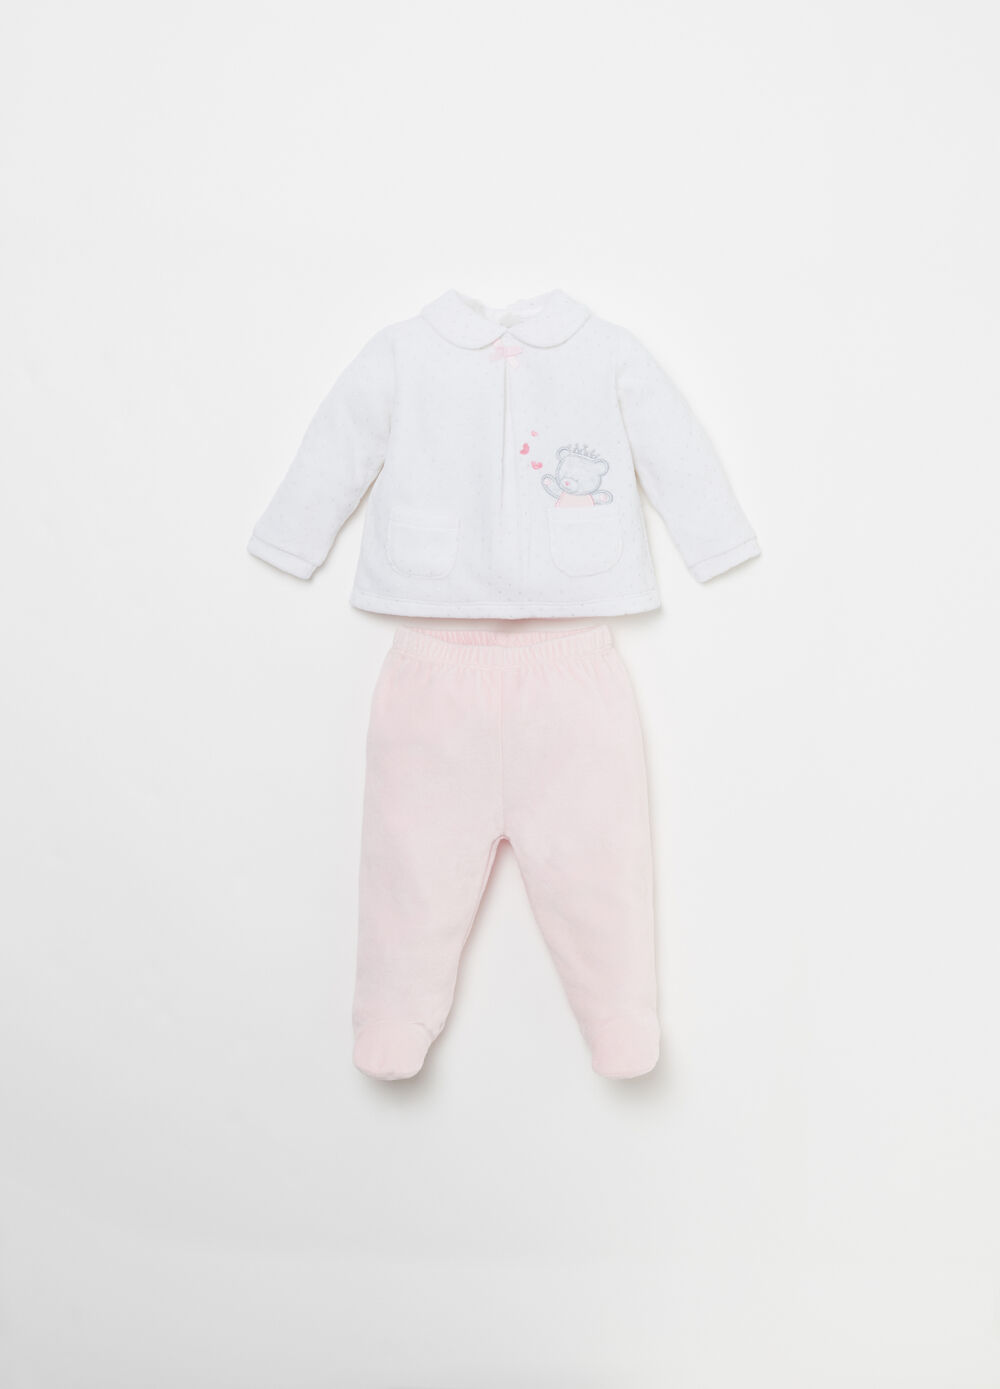 T-shirt and trousers outfit with glitter polka dot patch